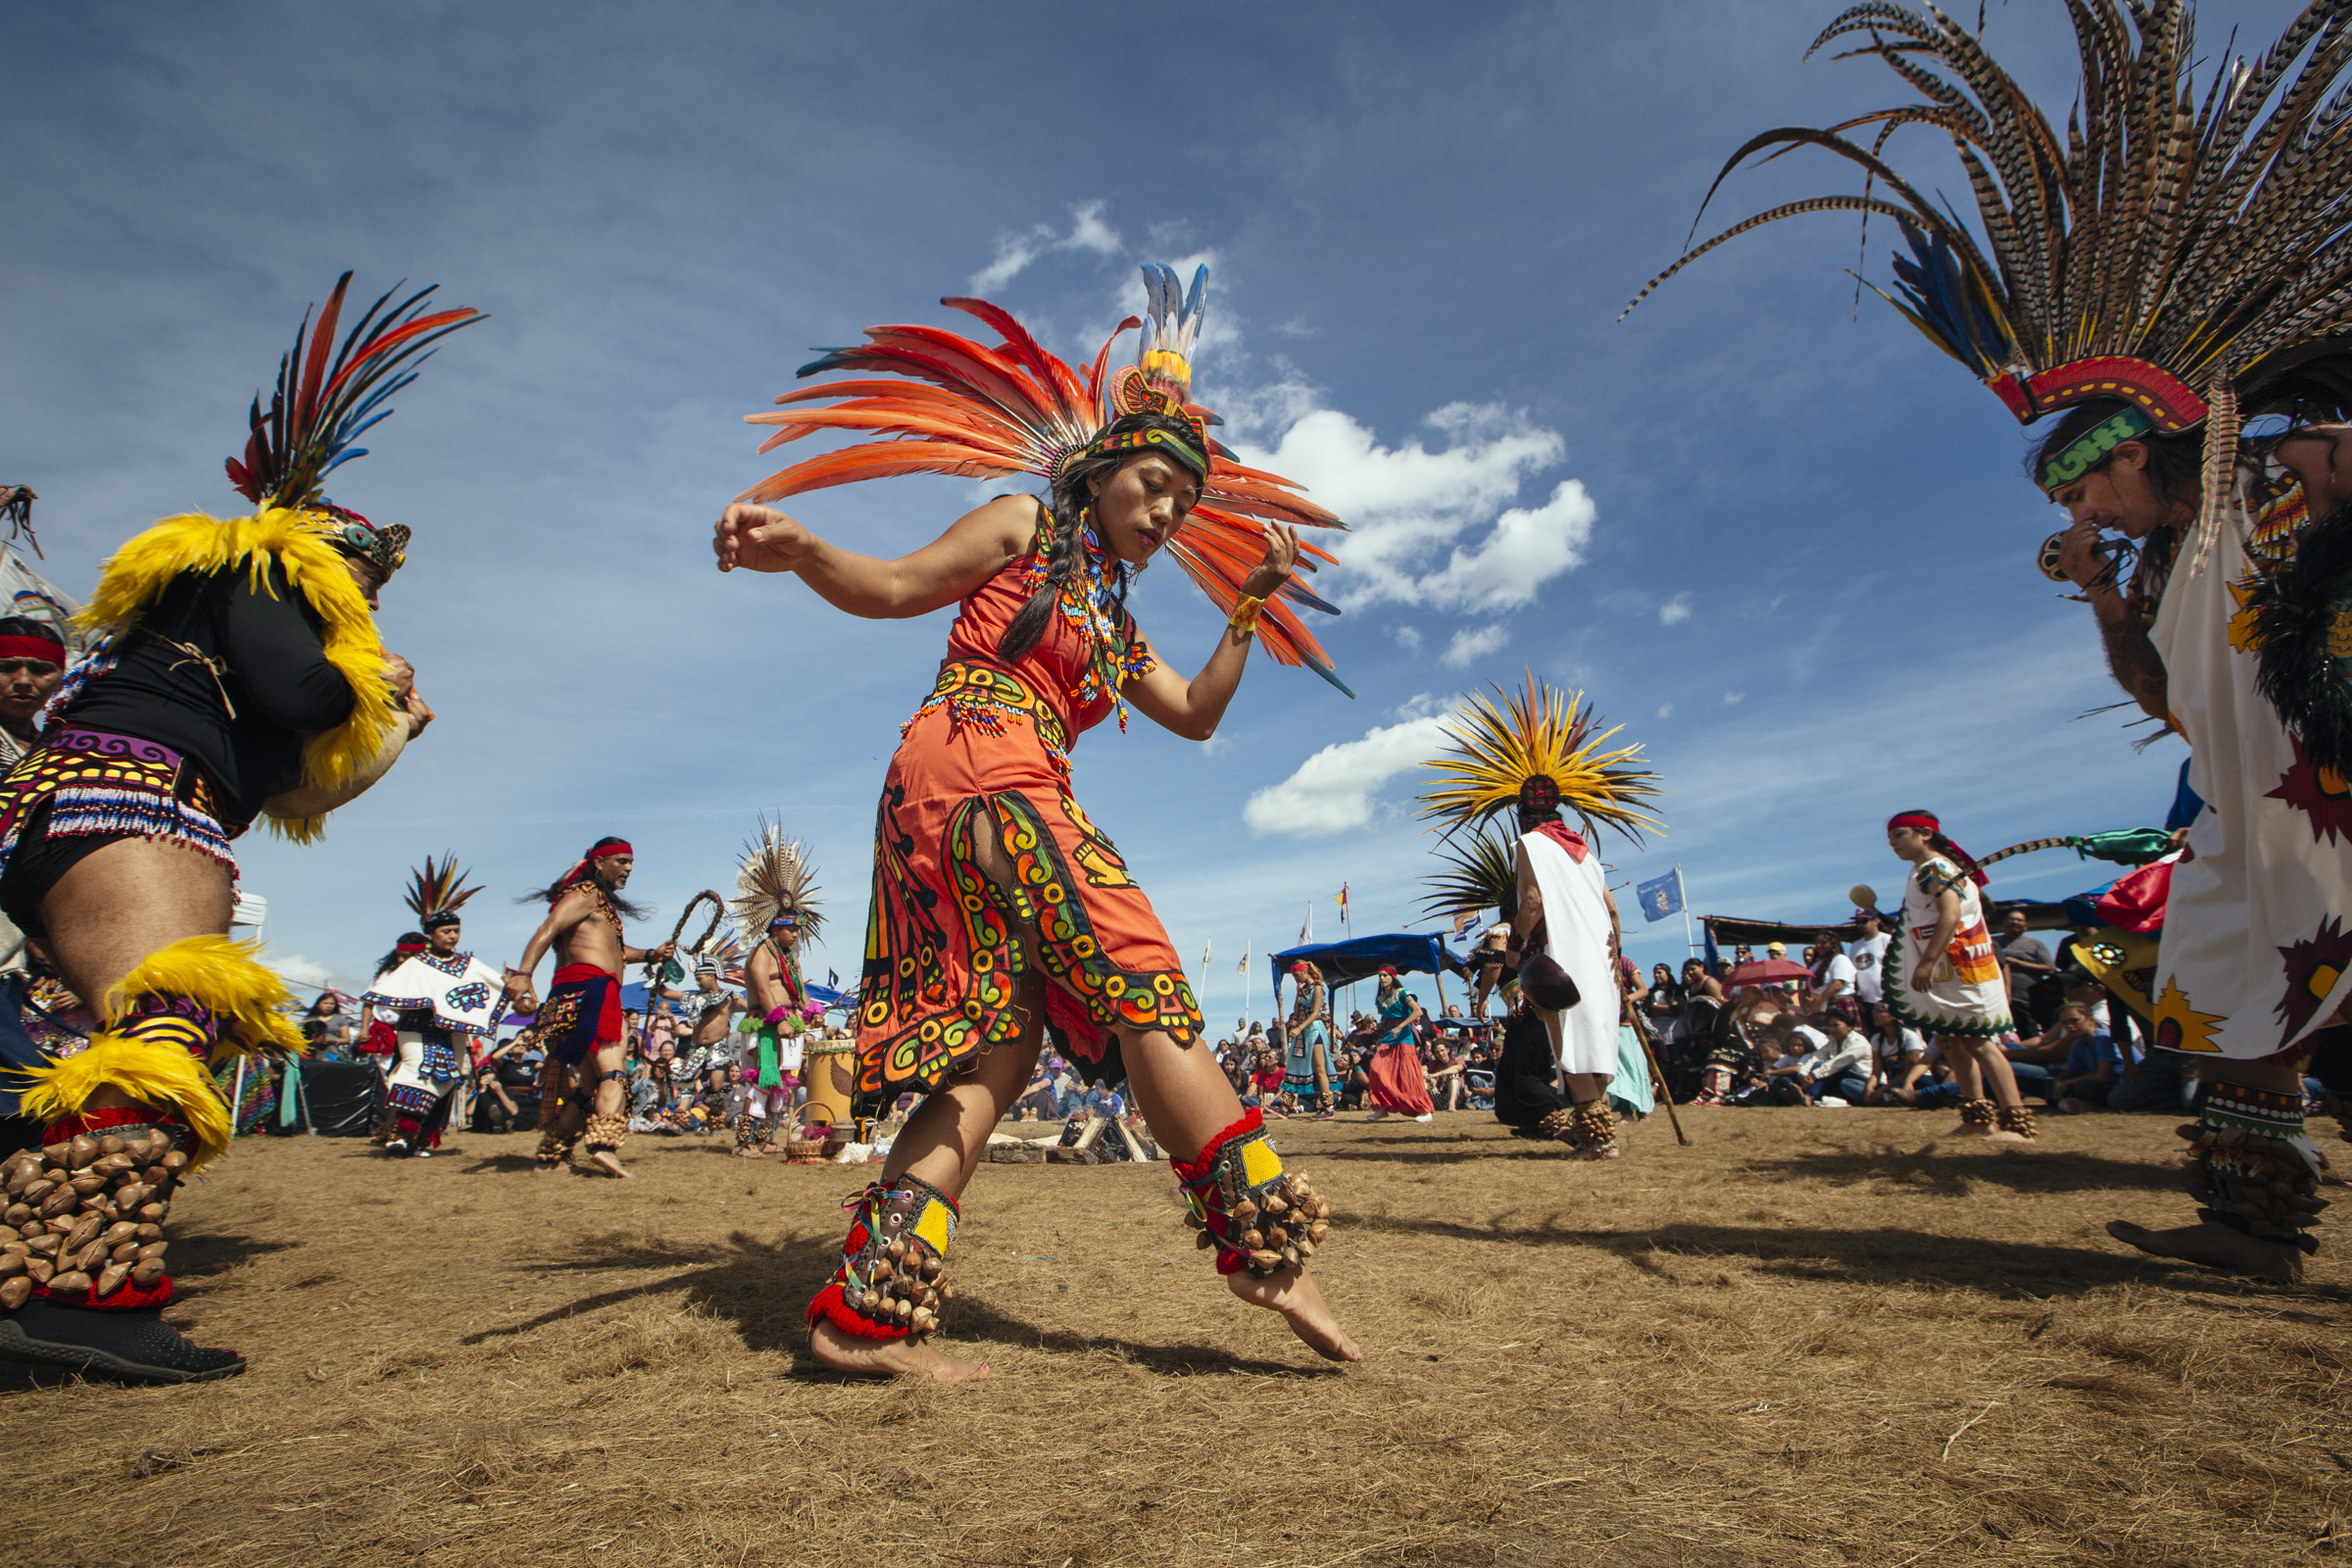 A group of dancers from various indigenous backgrounds perform a Mexicoto dance around the sacred fire at the Oceti Sakowin camp on Saturday, Sept. 10, 2016. Thousands of people, including Native Americans from over 280 tribes, have come to Standing Rock to protest the construction of the Dakota Access Pipeline, a 1,172-mile underground crude oil pipeline which is expected to transport crude oil from the Bakken region to an oil tank farm in Patoka, Illinois. (Photo by Angus Mordant/Groundtruth)